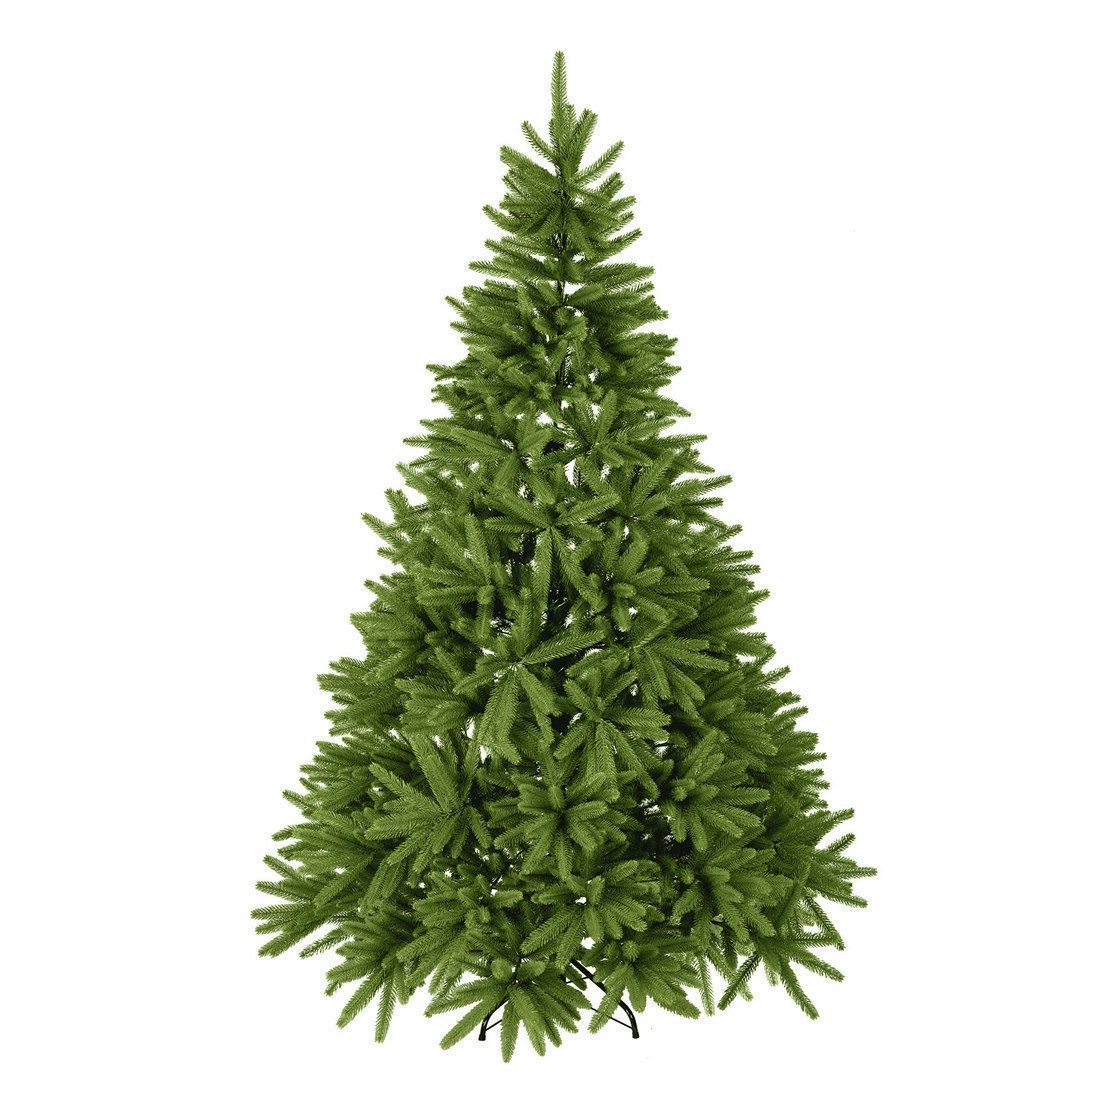 7 Foot Ft Artificial Christmas Trees Fir Spruce Full Tree Made Of Pe